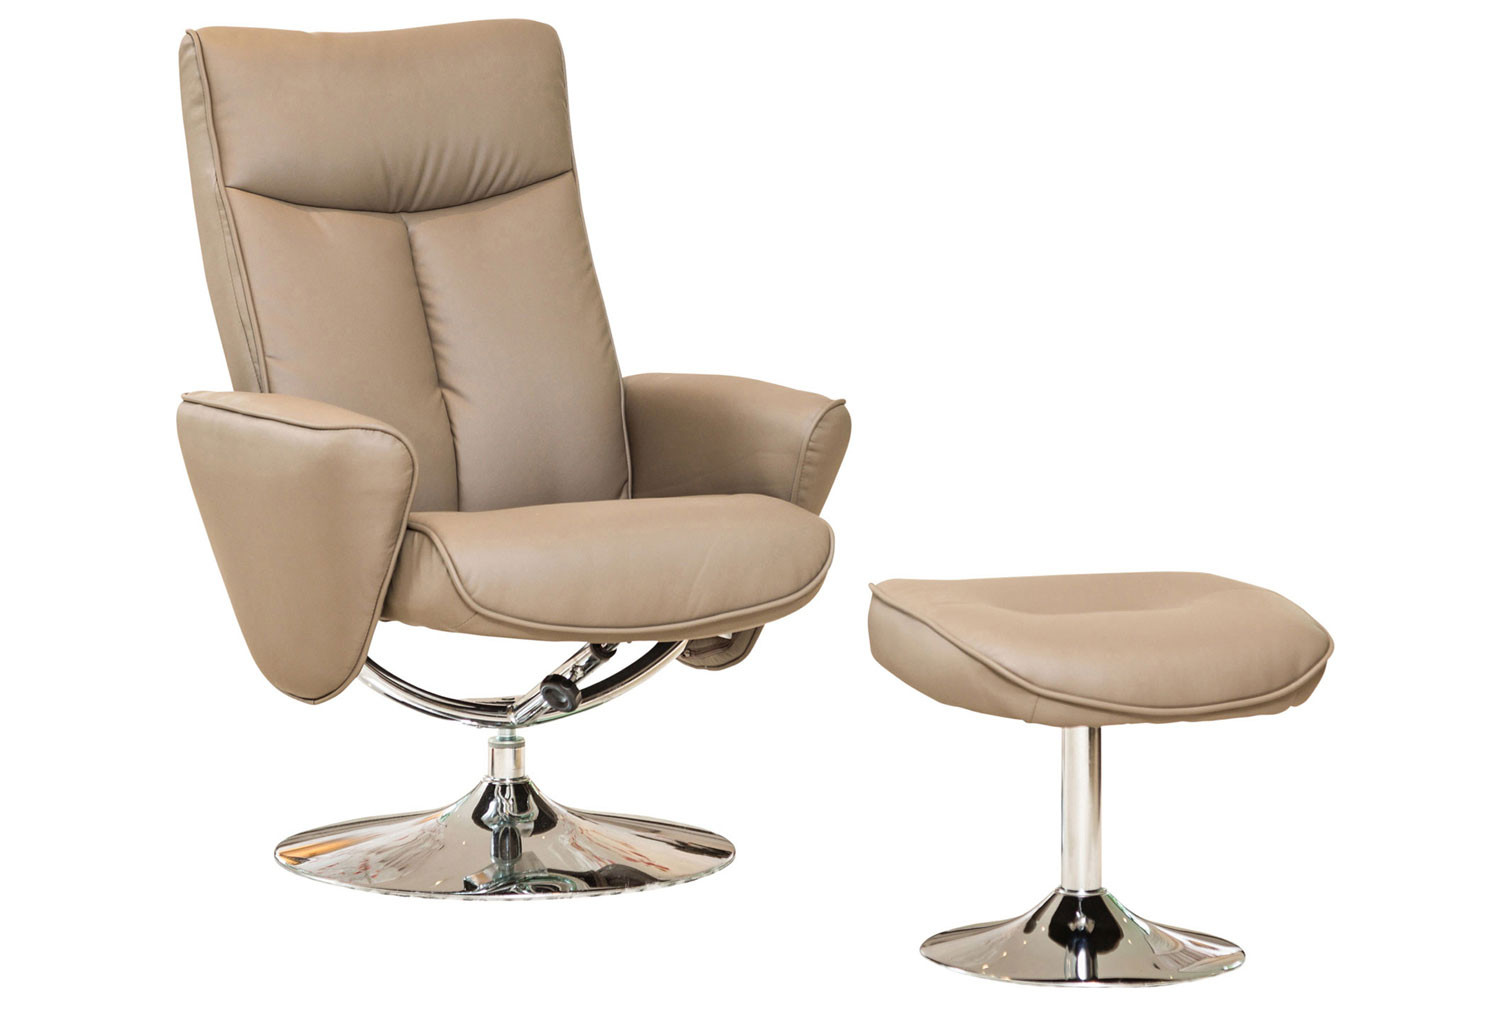 Picture of: Wagner Swivel Recliner Chair With Footstool Furniture At Work